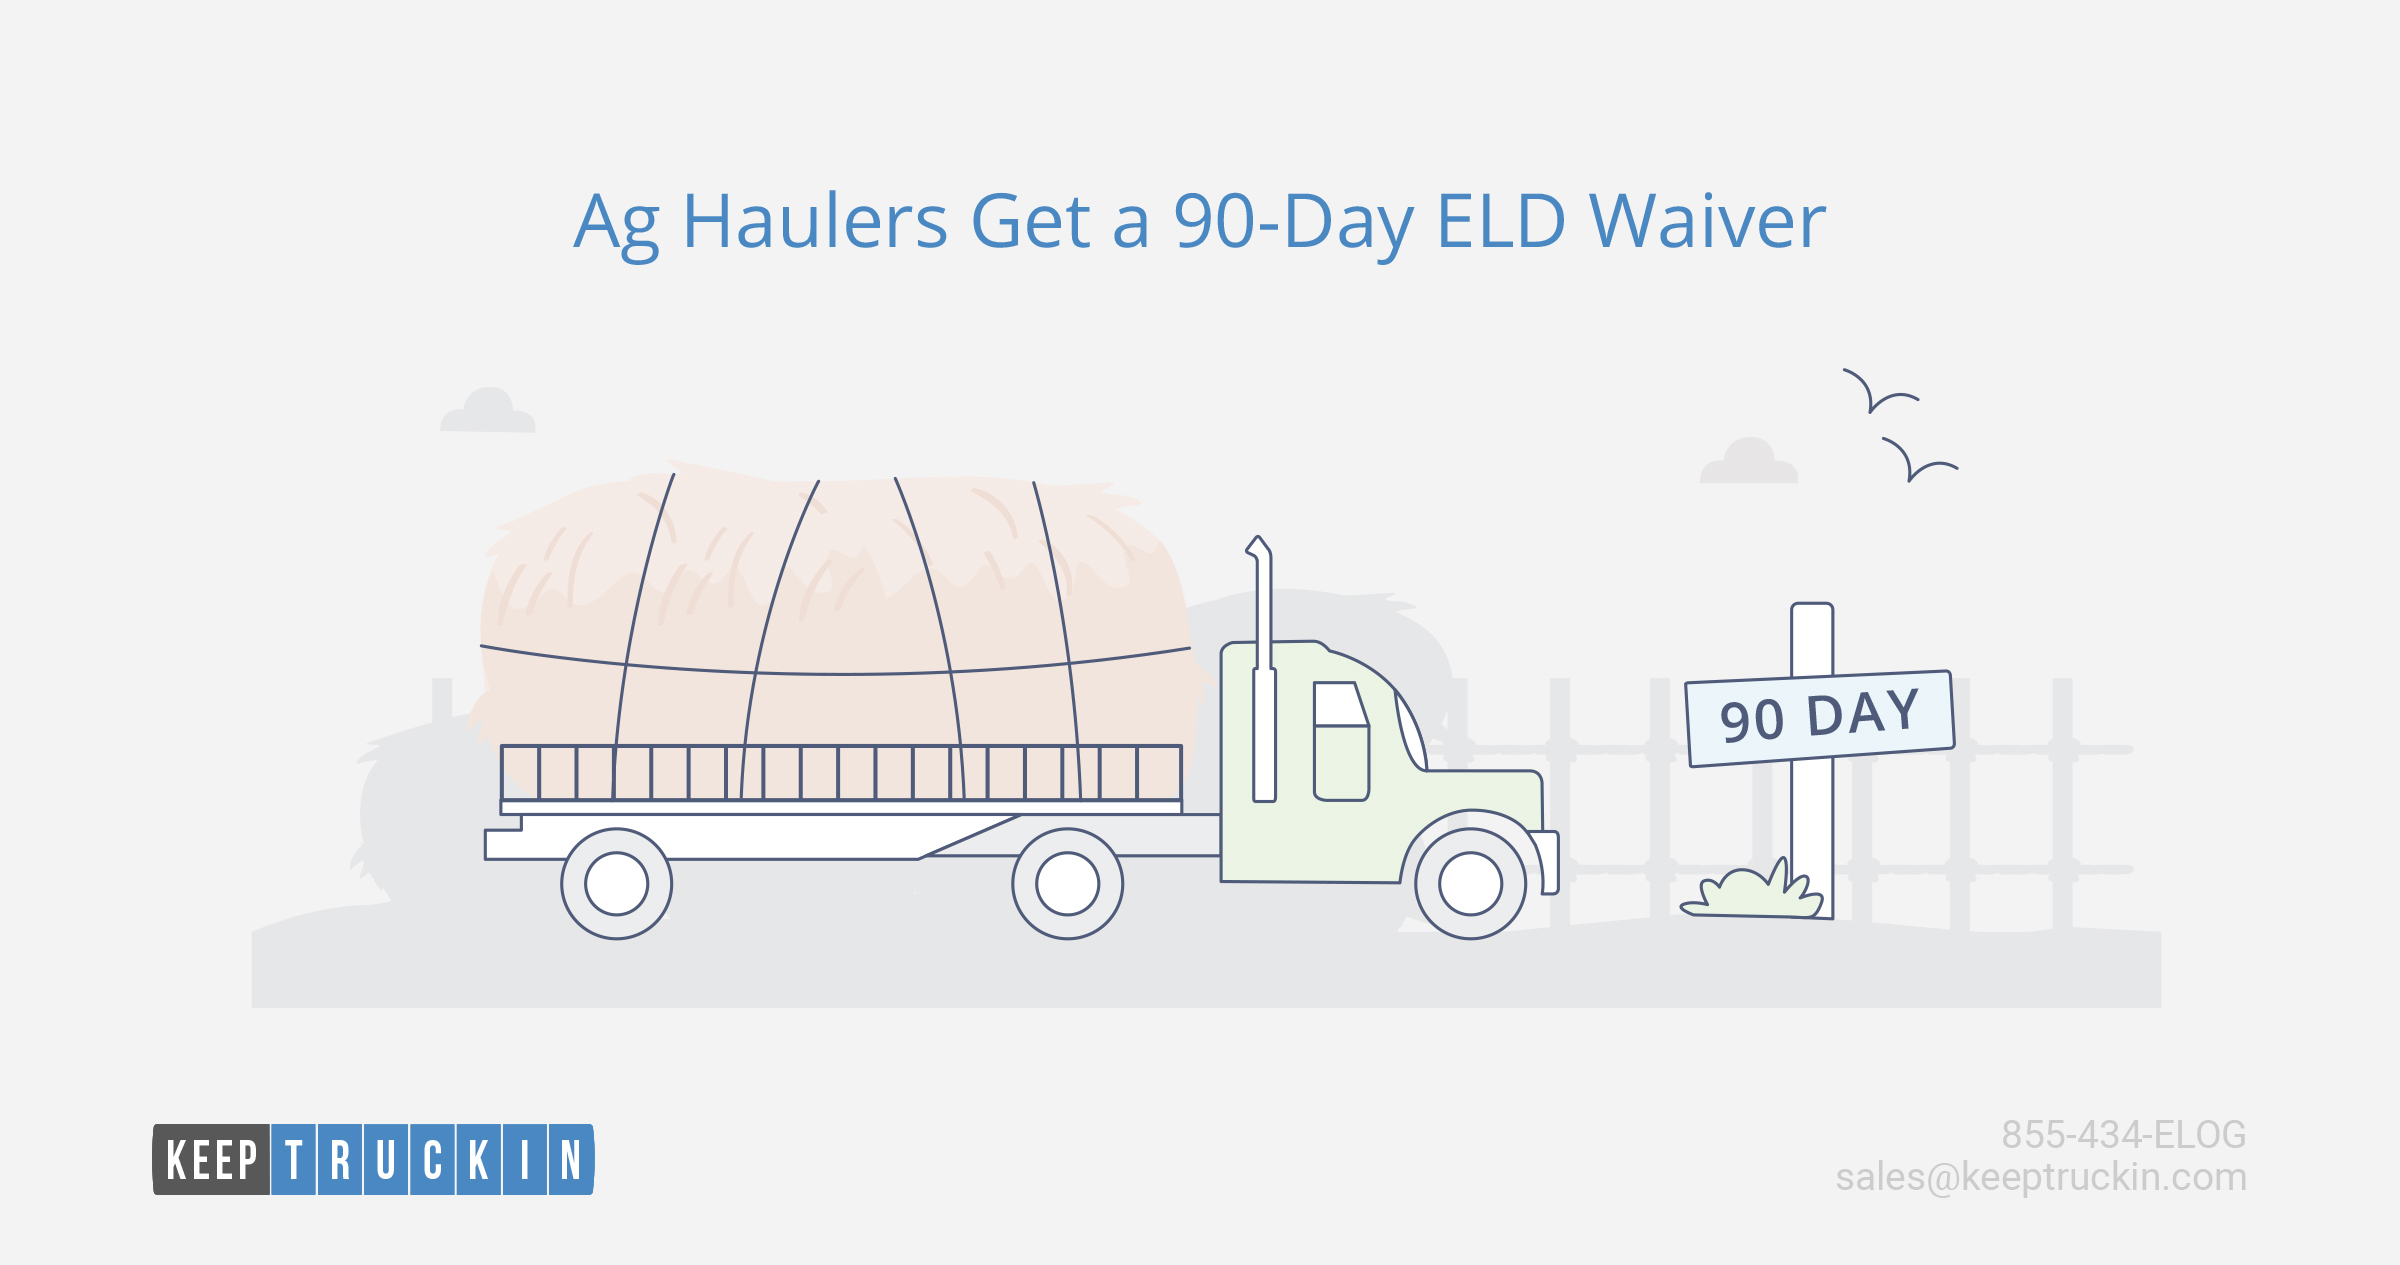 Ag Haulers Get a 90-Day ELD Waiver